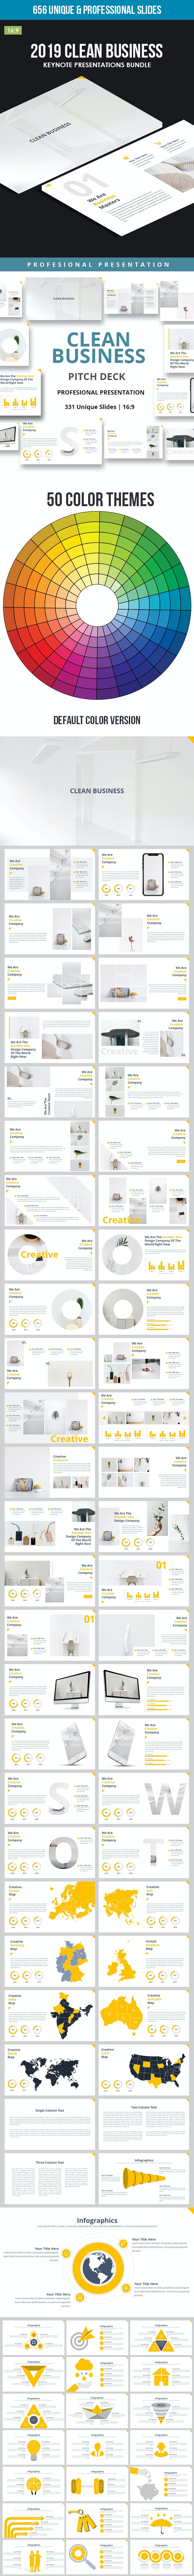 2019 Clean Business Keynote Presentations Bundle - Business Keynote Templates